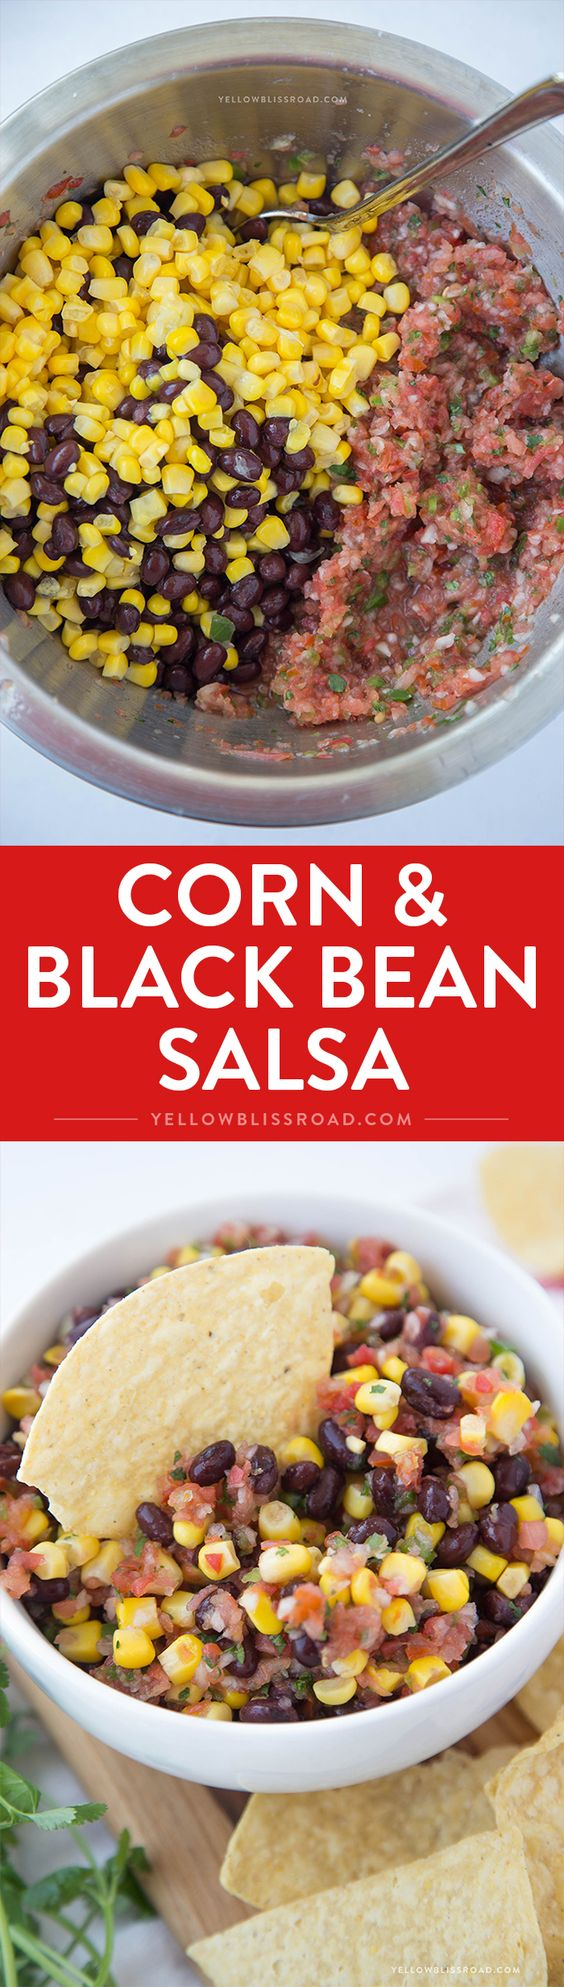 Corn & Black Bean Salsa - easy, fresh salsa with corn and black beans